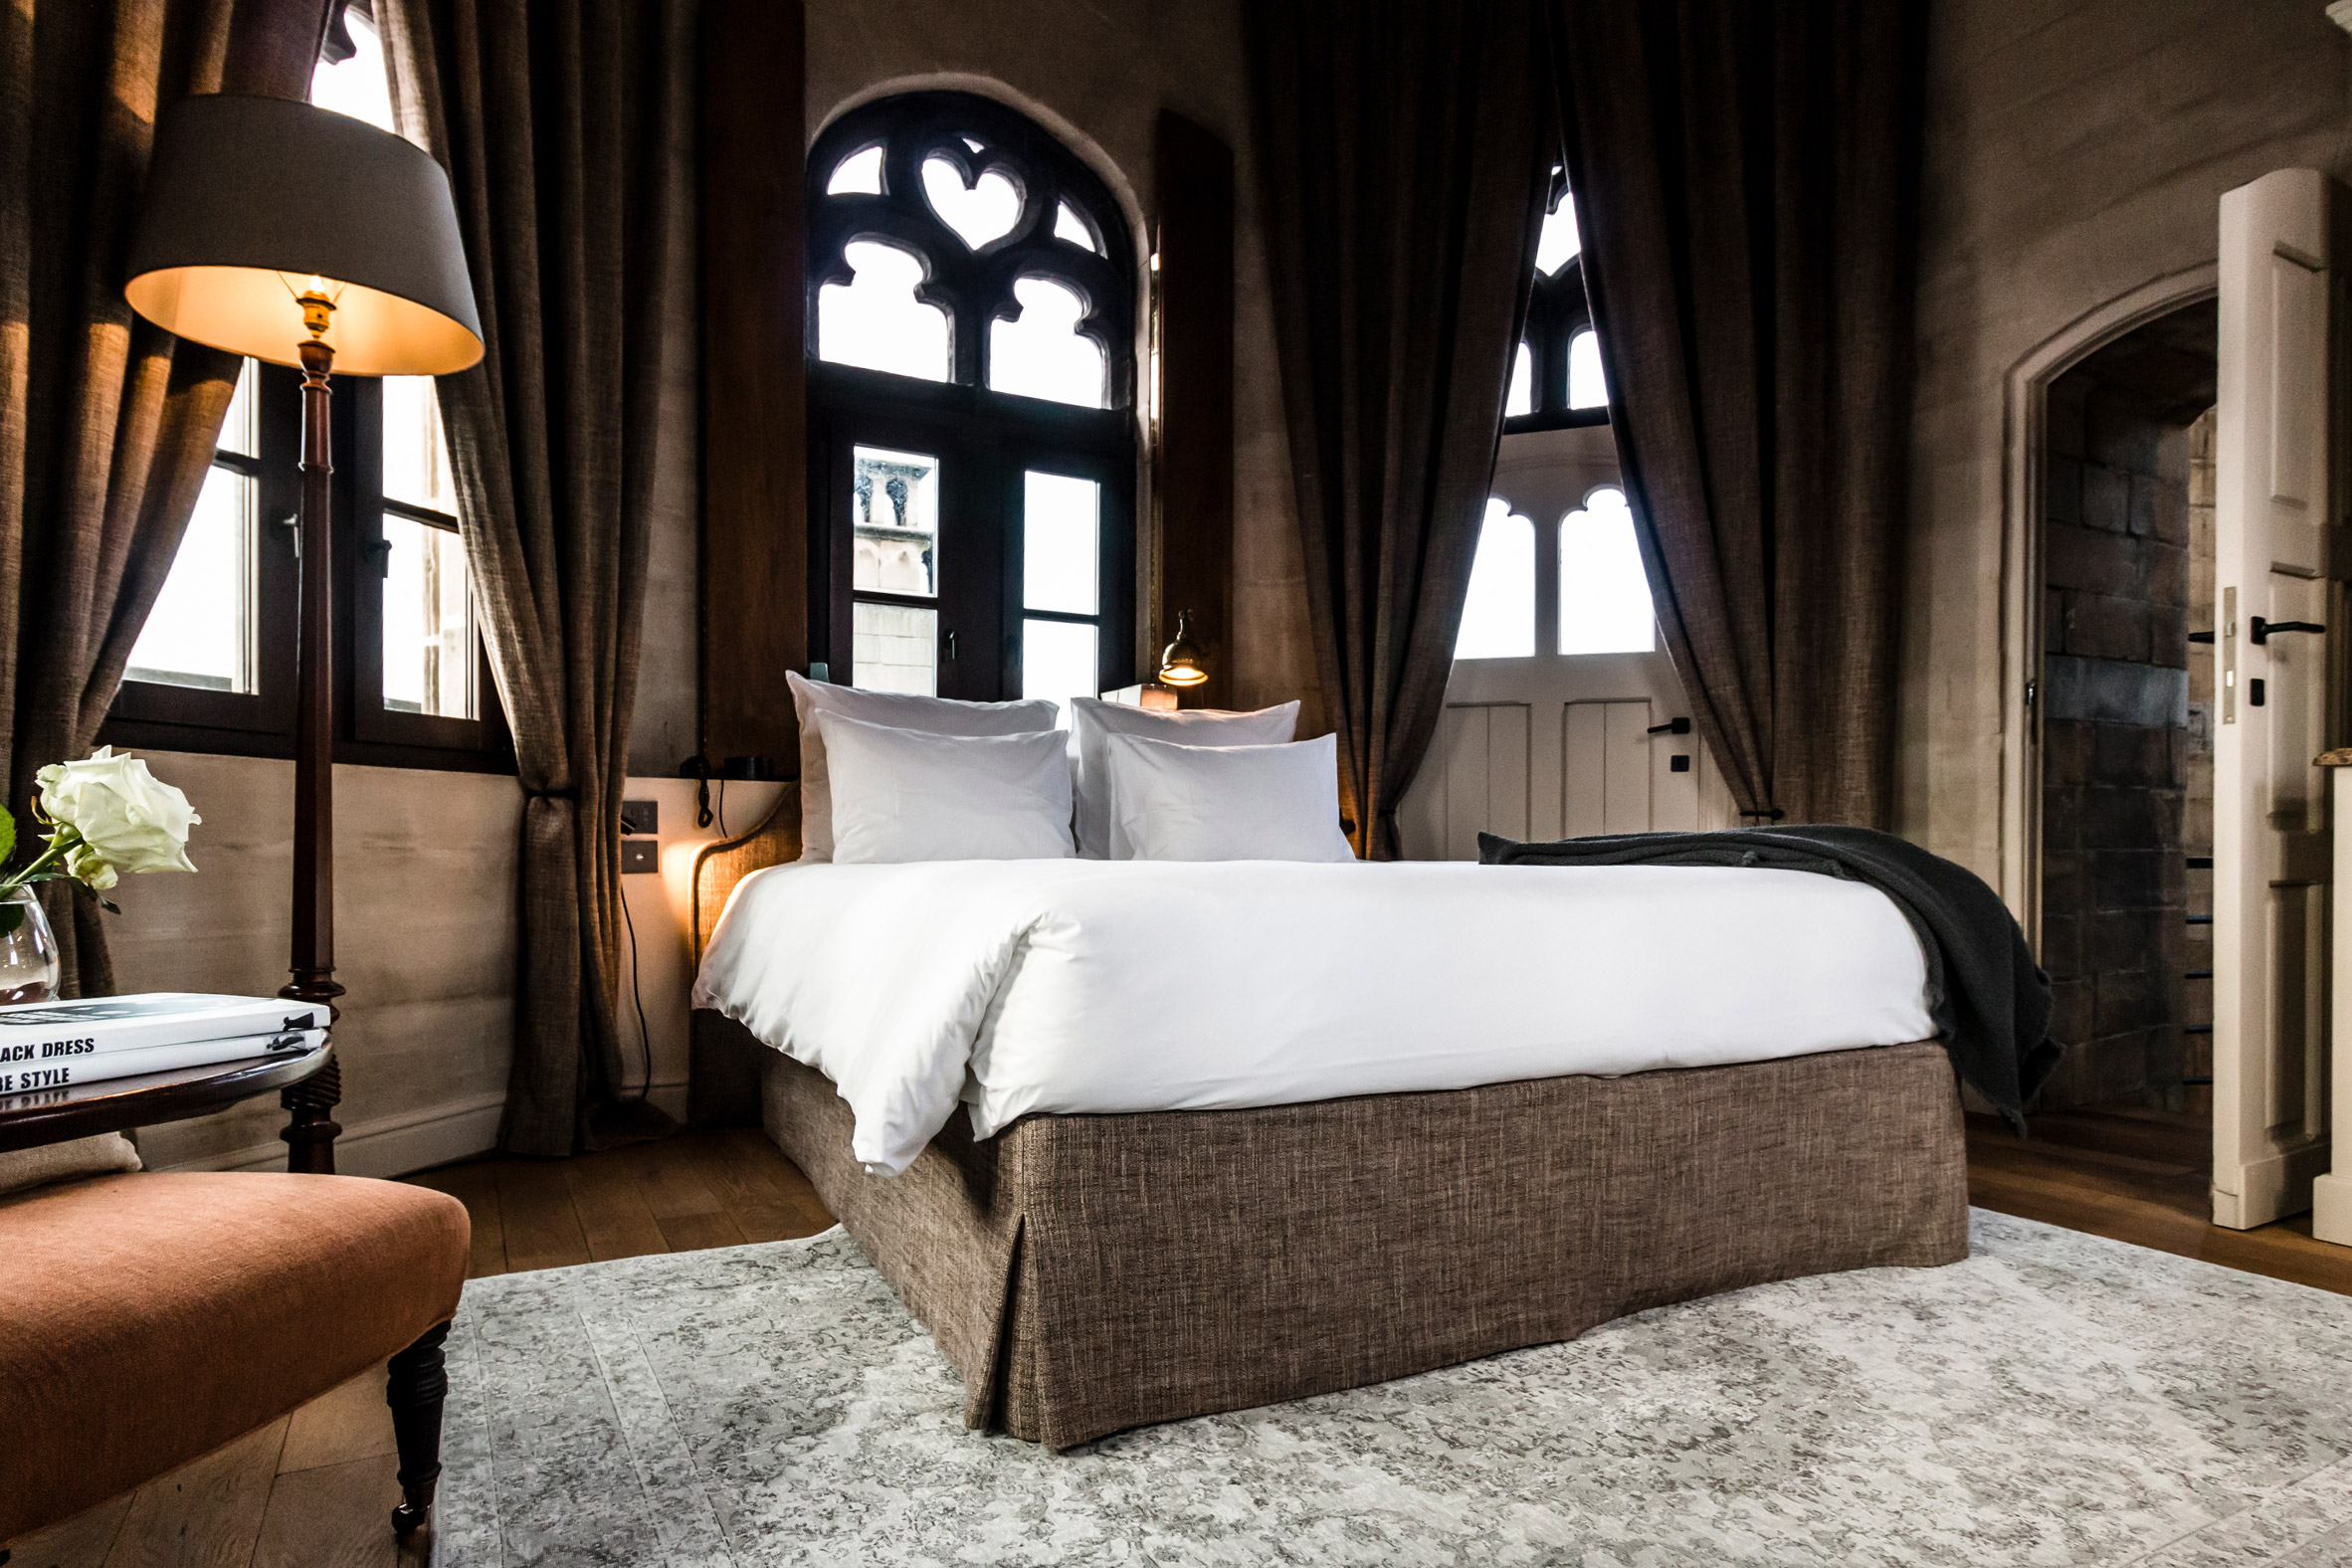 1898 The Post won the Urban Hotel - Conversion category at the AHEAD Global awards, which were held at the Ham Yard Hotel in London